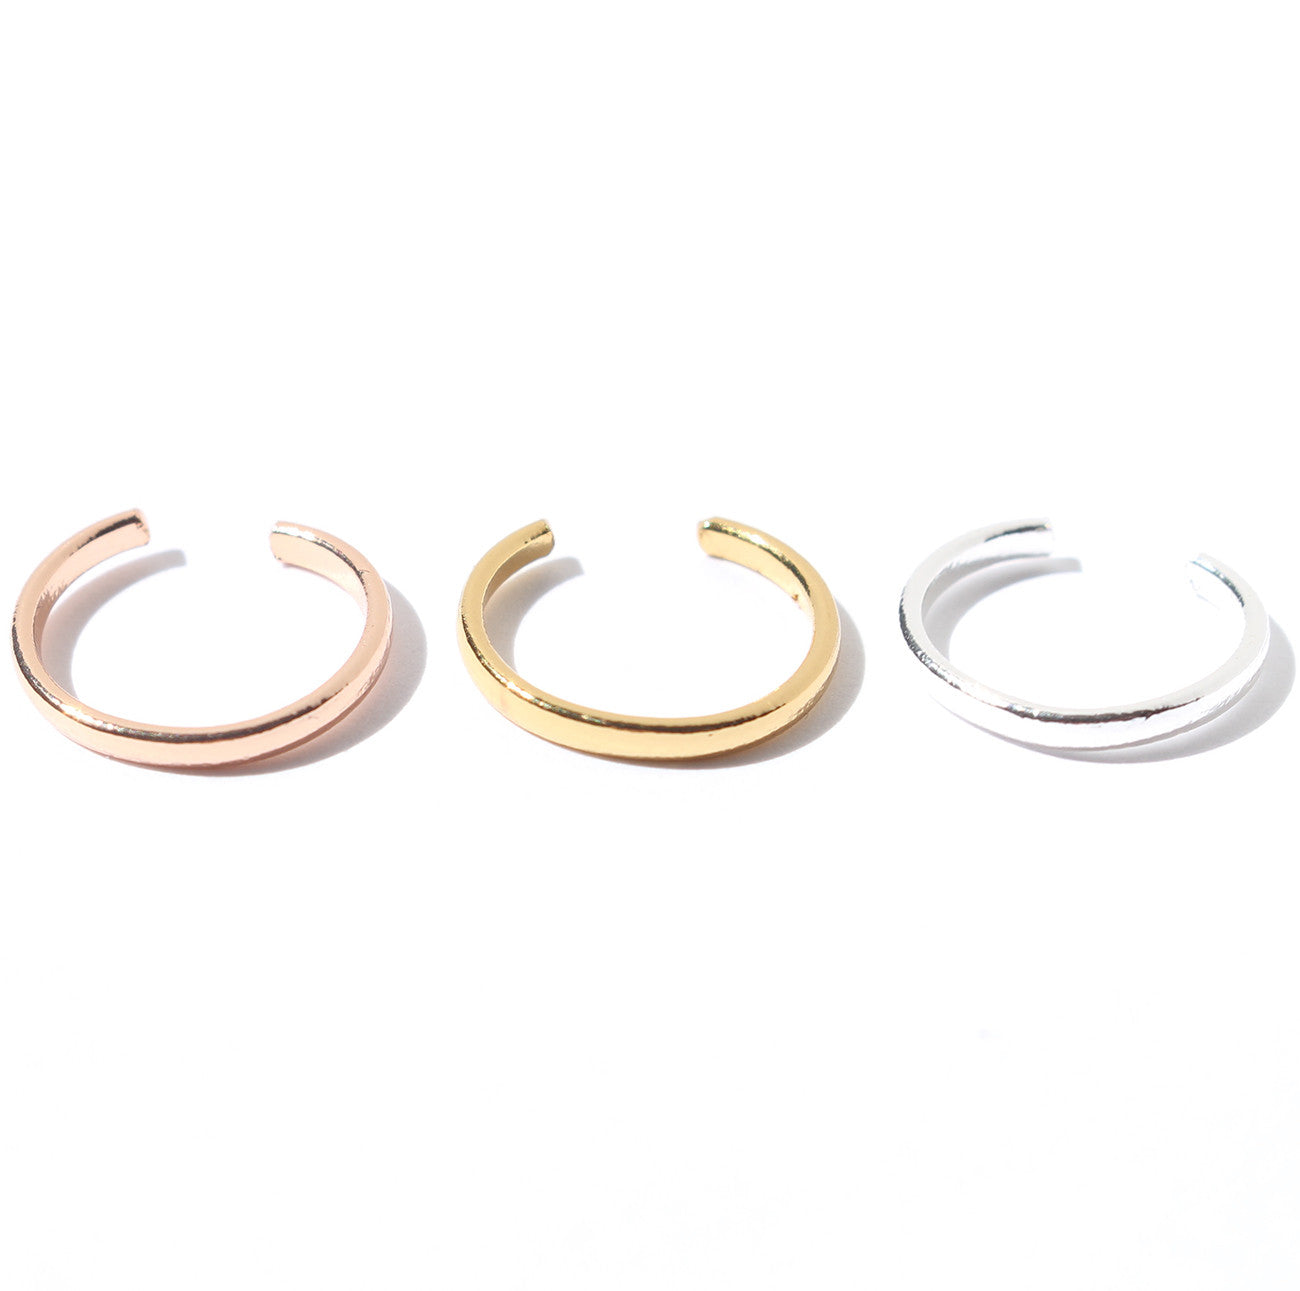 Jenny Bird Cleo Ear Cuff in Rose Gold, Gold and Silver